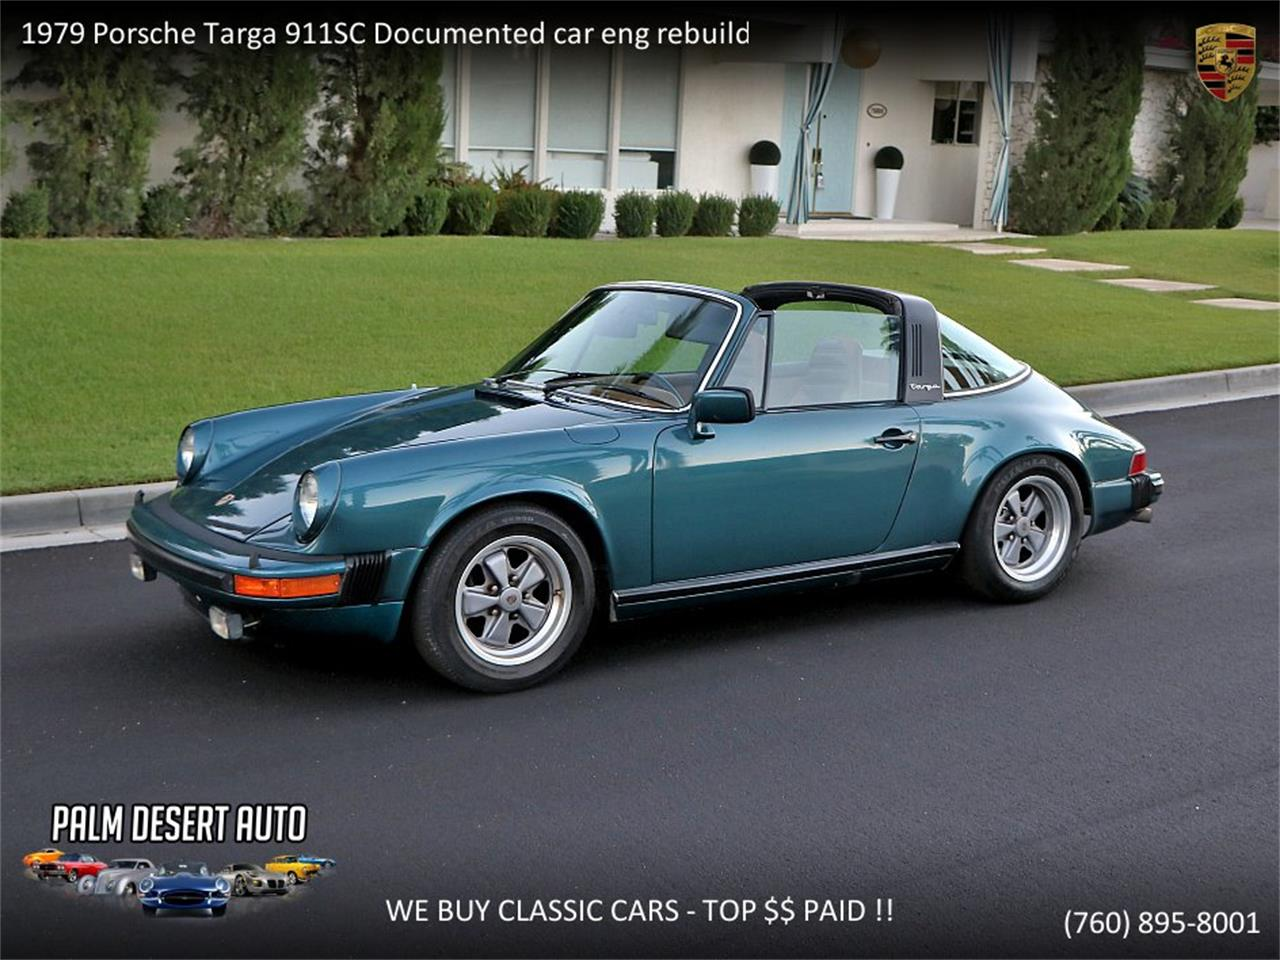 Porsche Targa For Sale >> 1979 Porsche 911 Targa For Sale Classiccars Com Cc 1112078